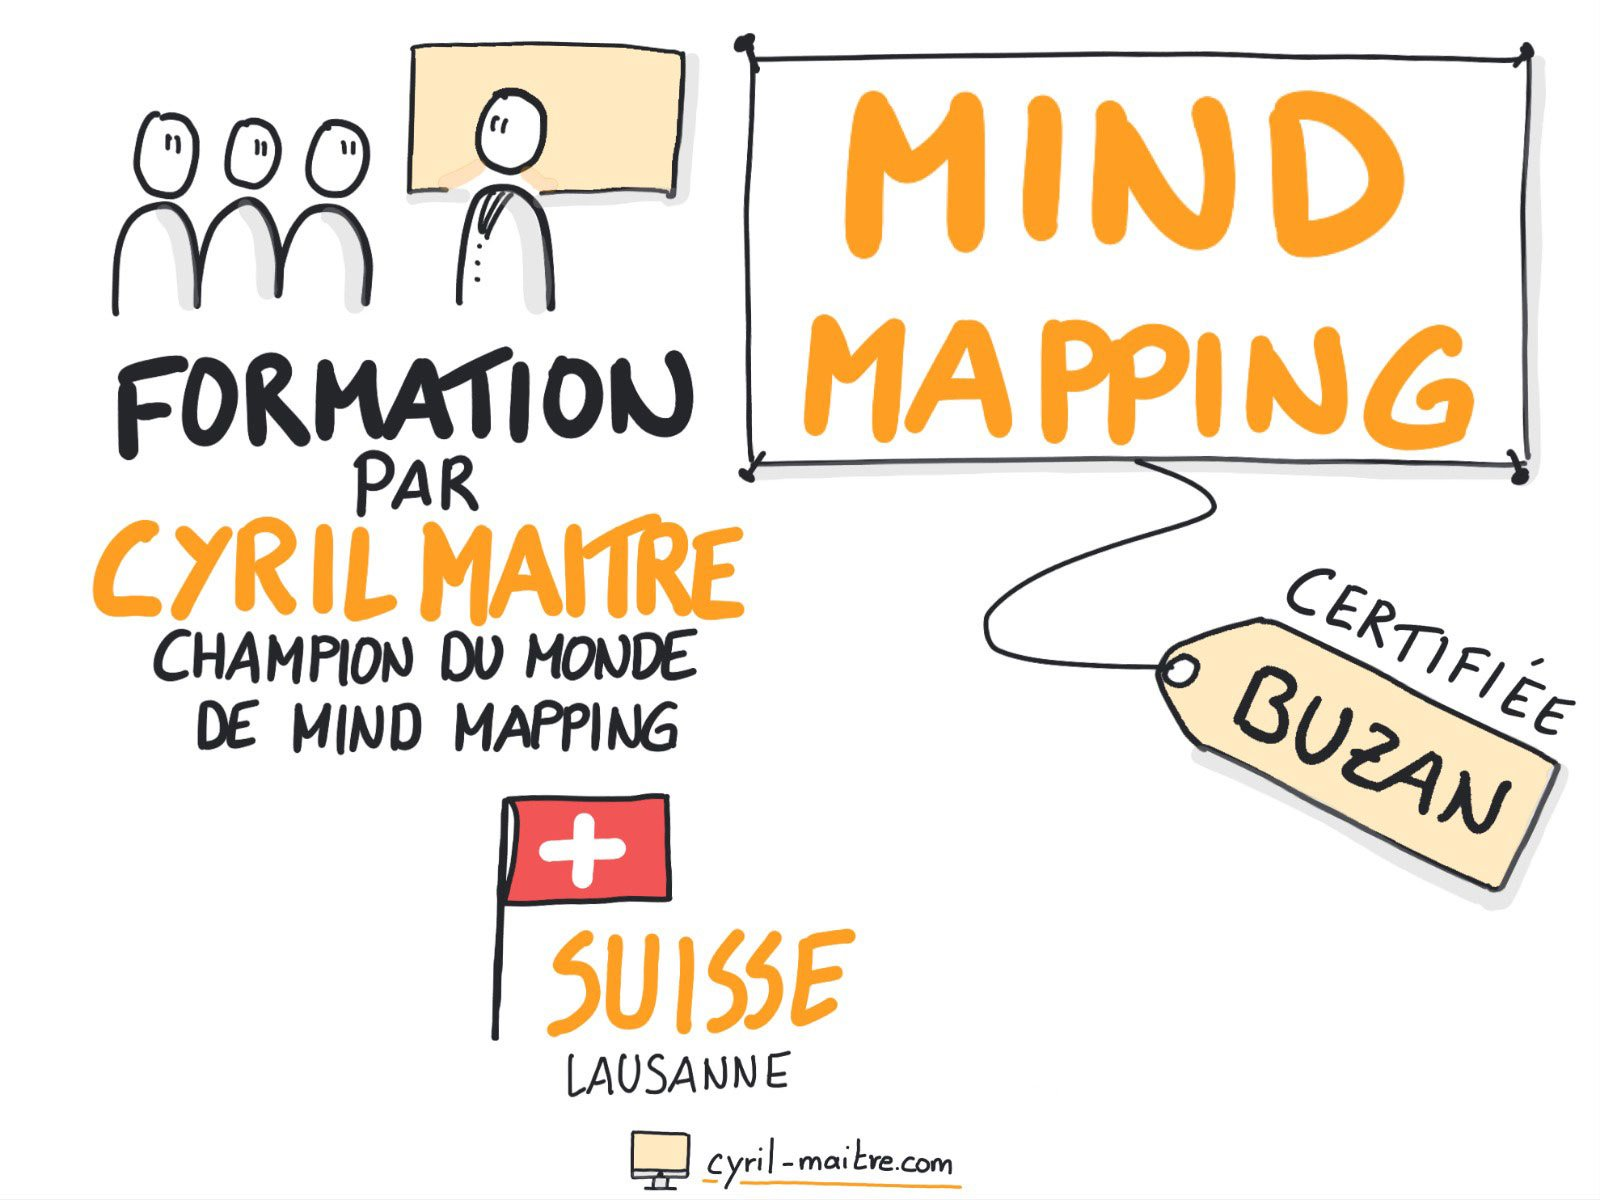 formation mind mapping, cartes mentales suisse